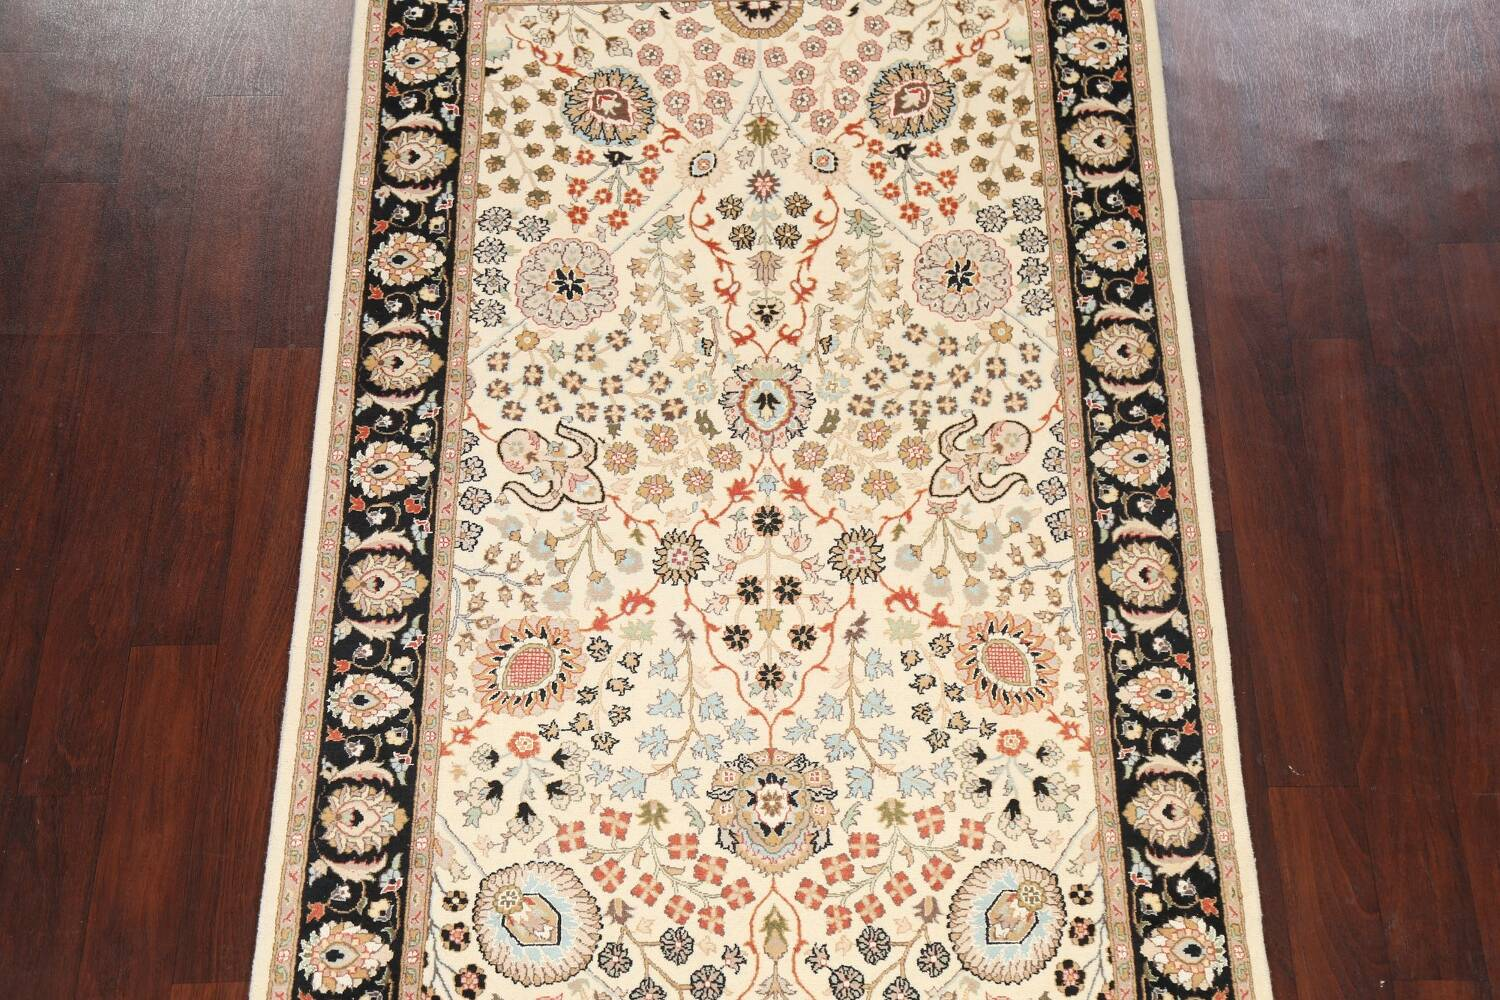 Vegetable Dye Floral Tabriz Oriental Area Rug 4x7 image 3